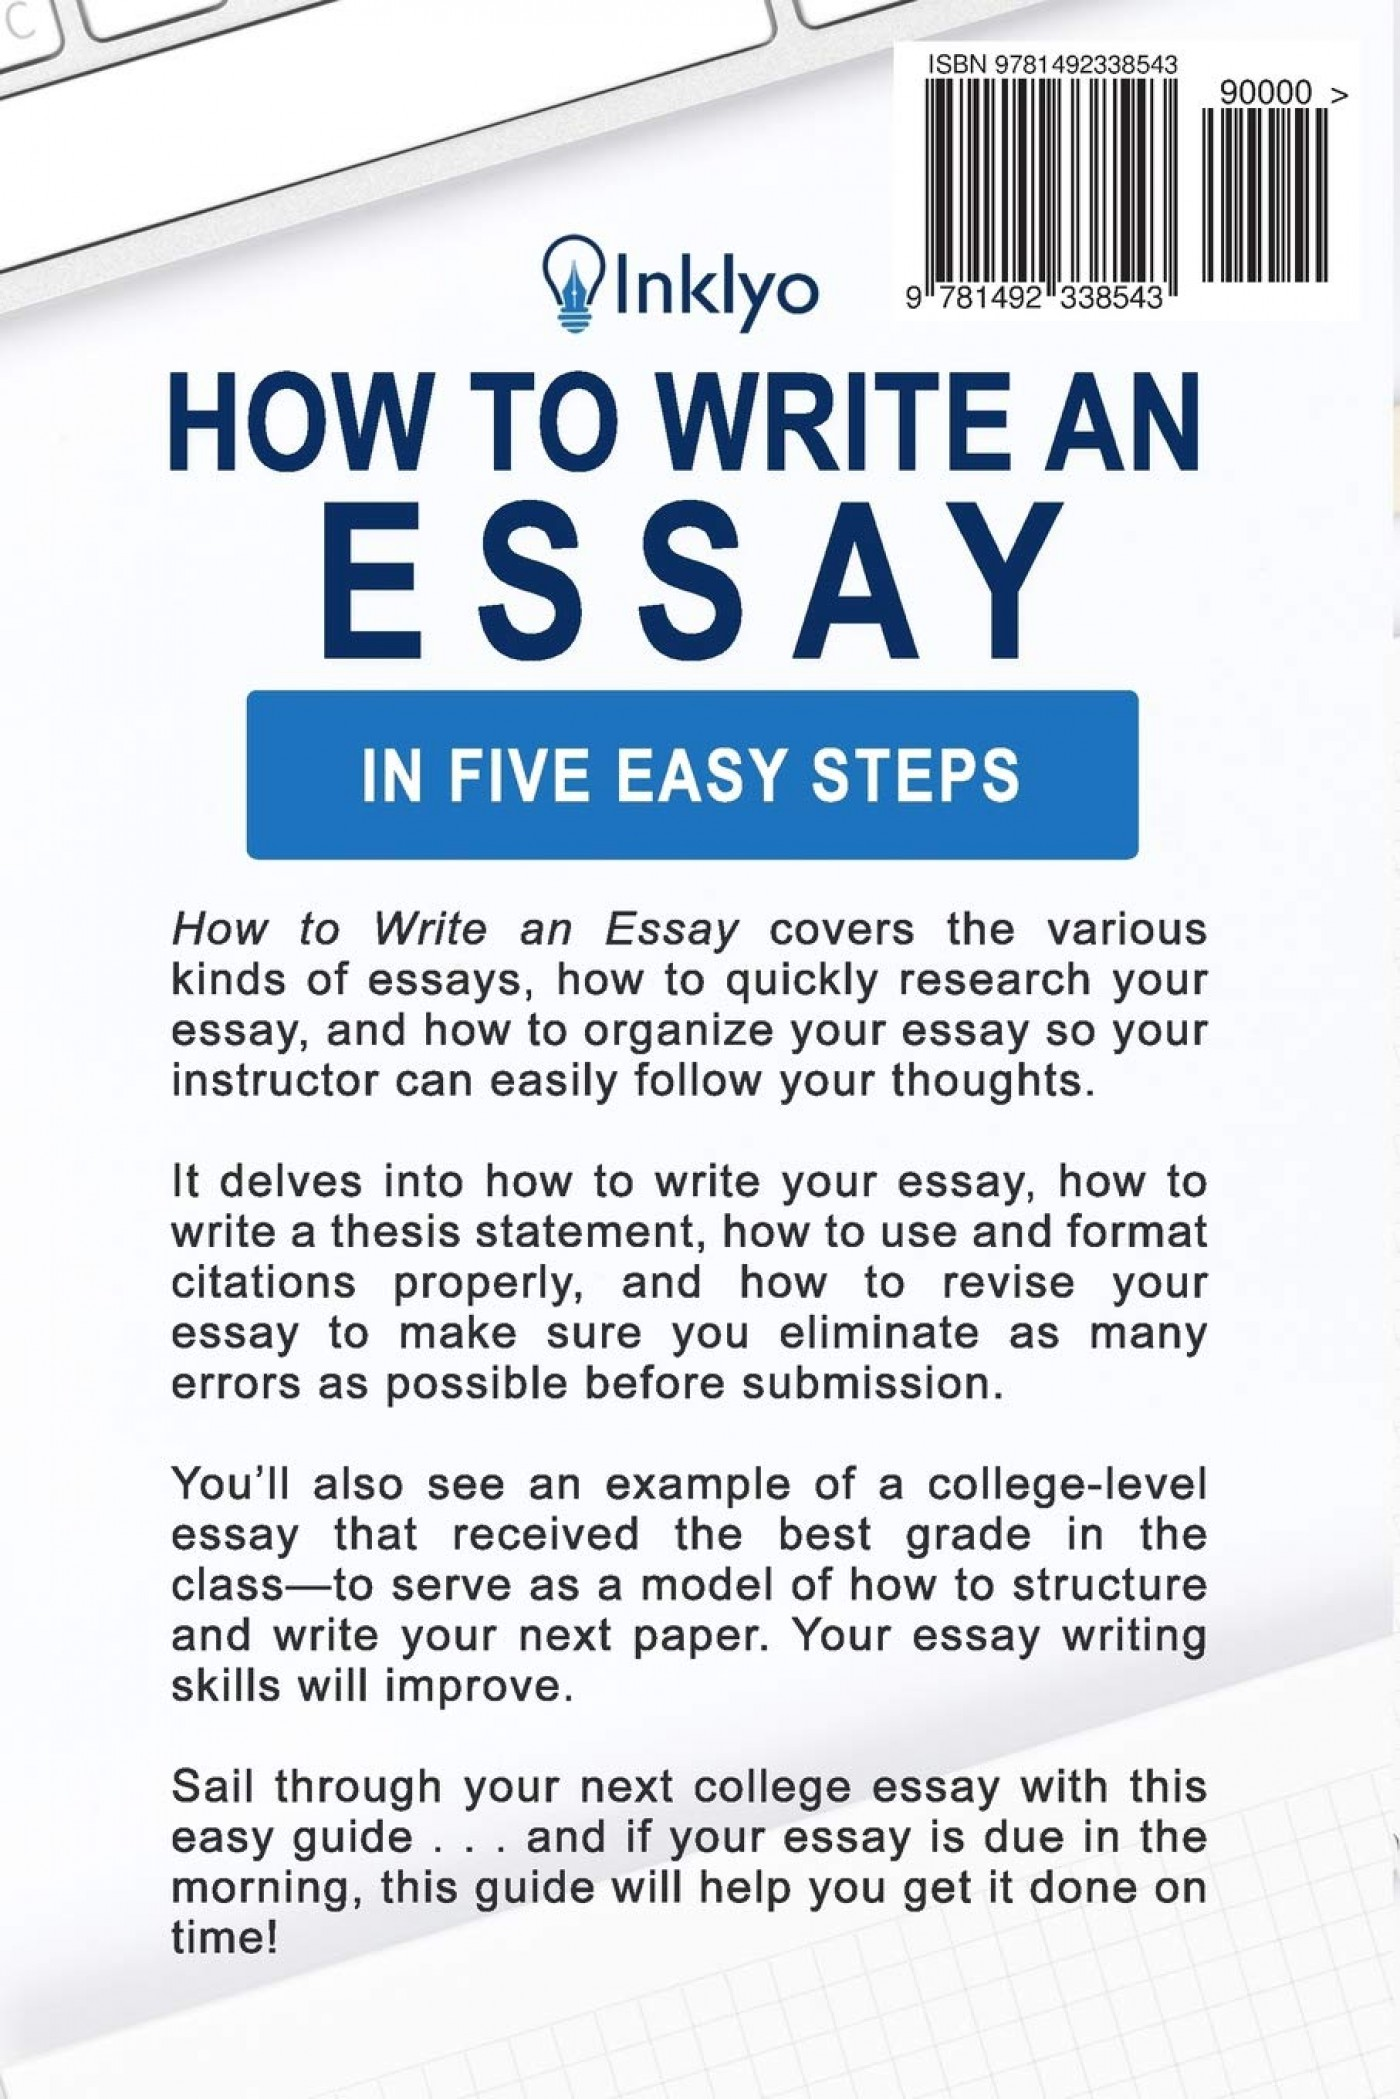 002 How To Write An Essay Example Shocking English Fast Title In Mla Format Conclusion 1400